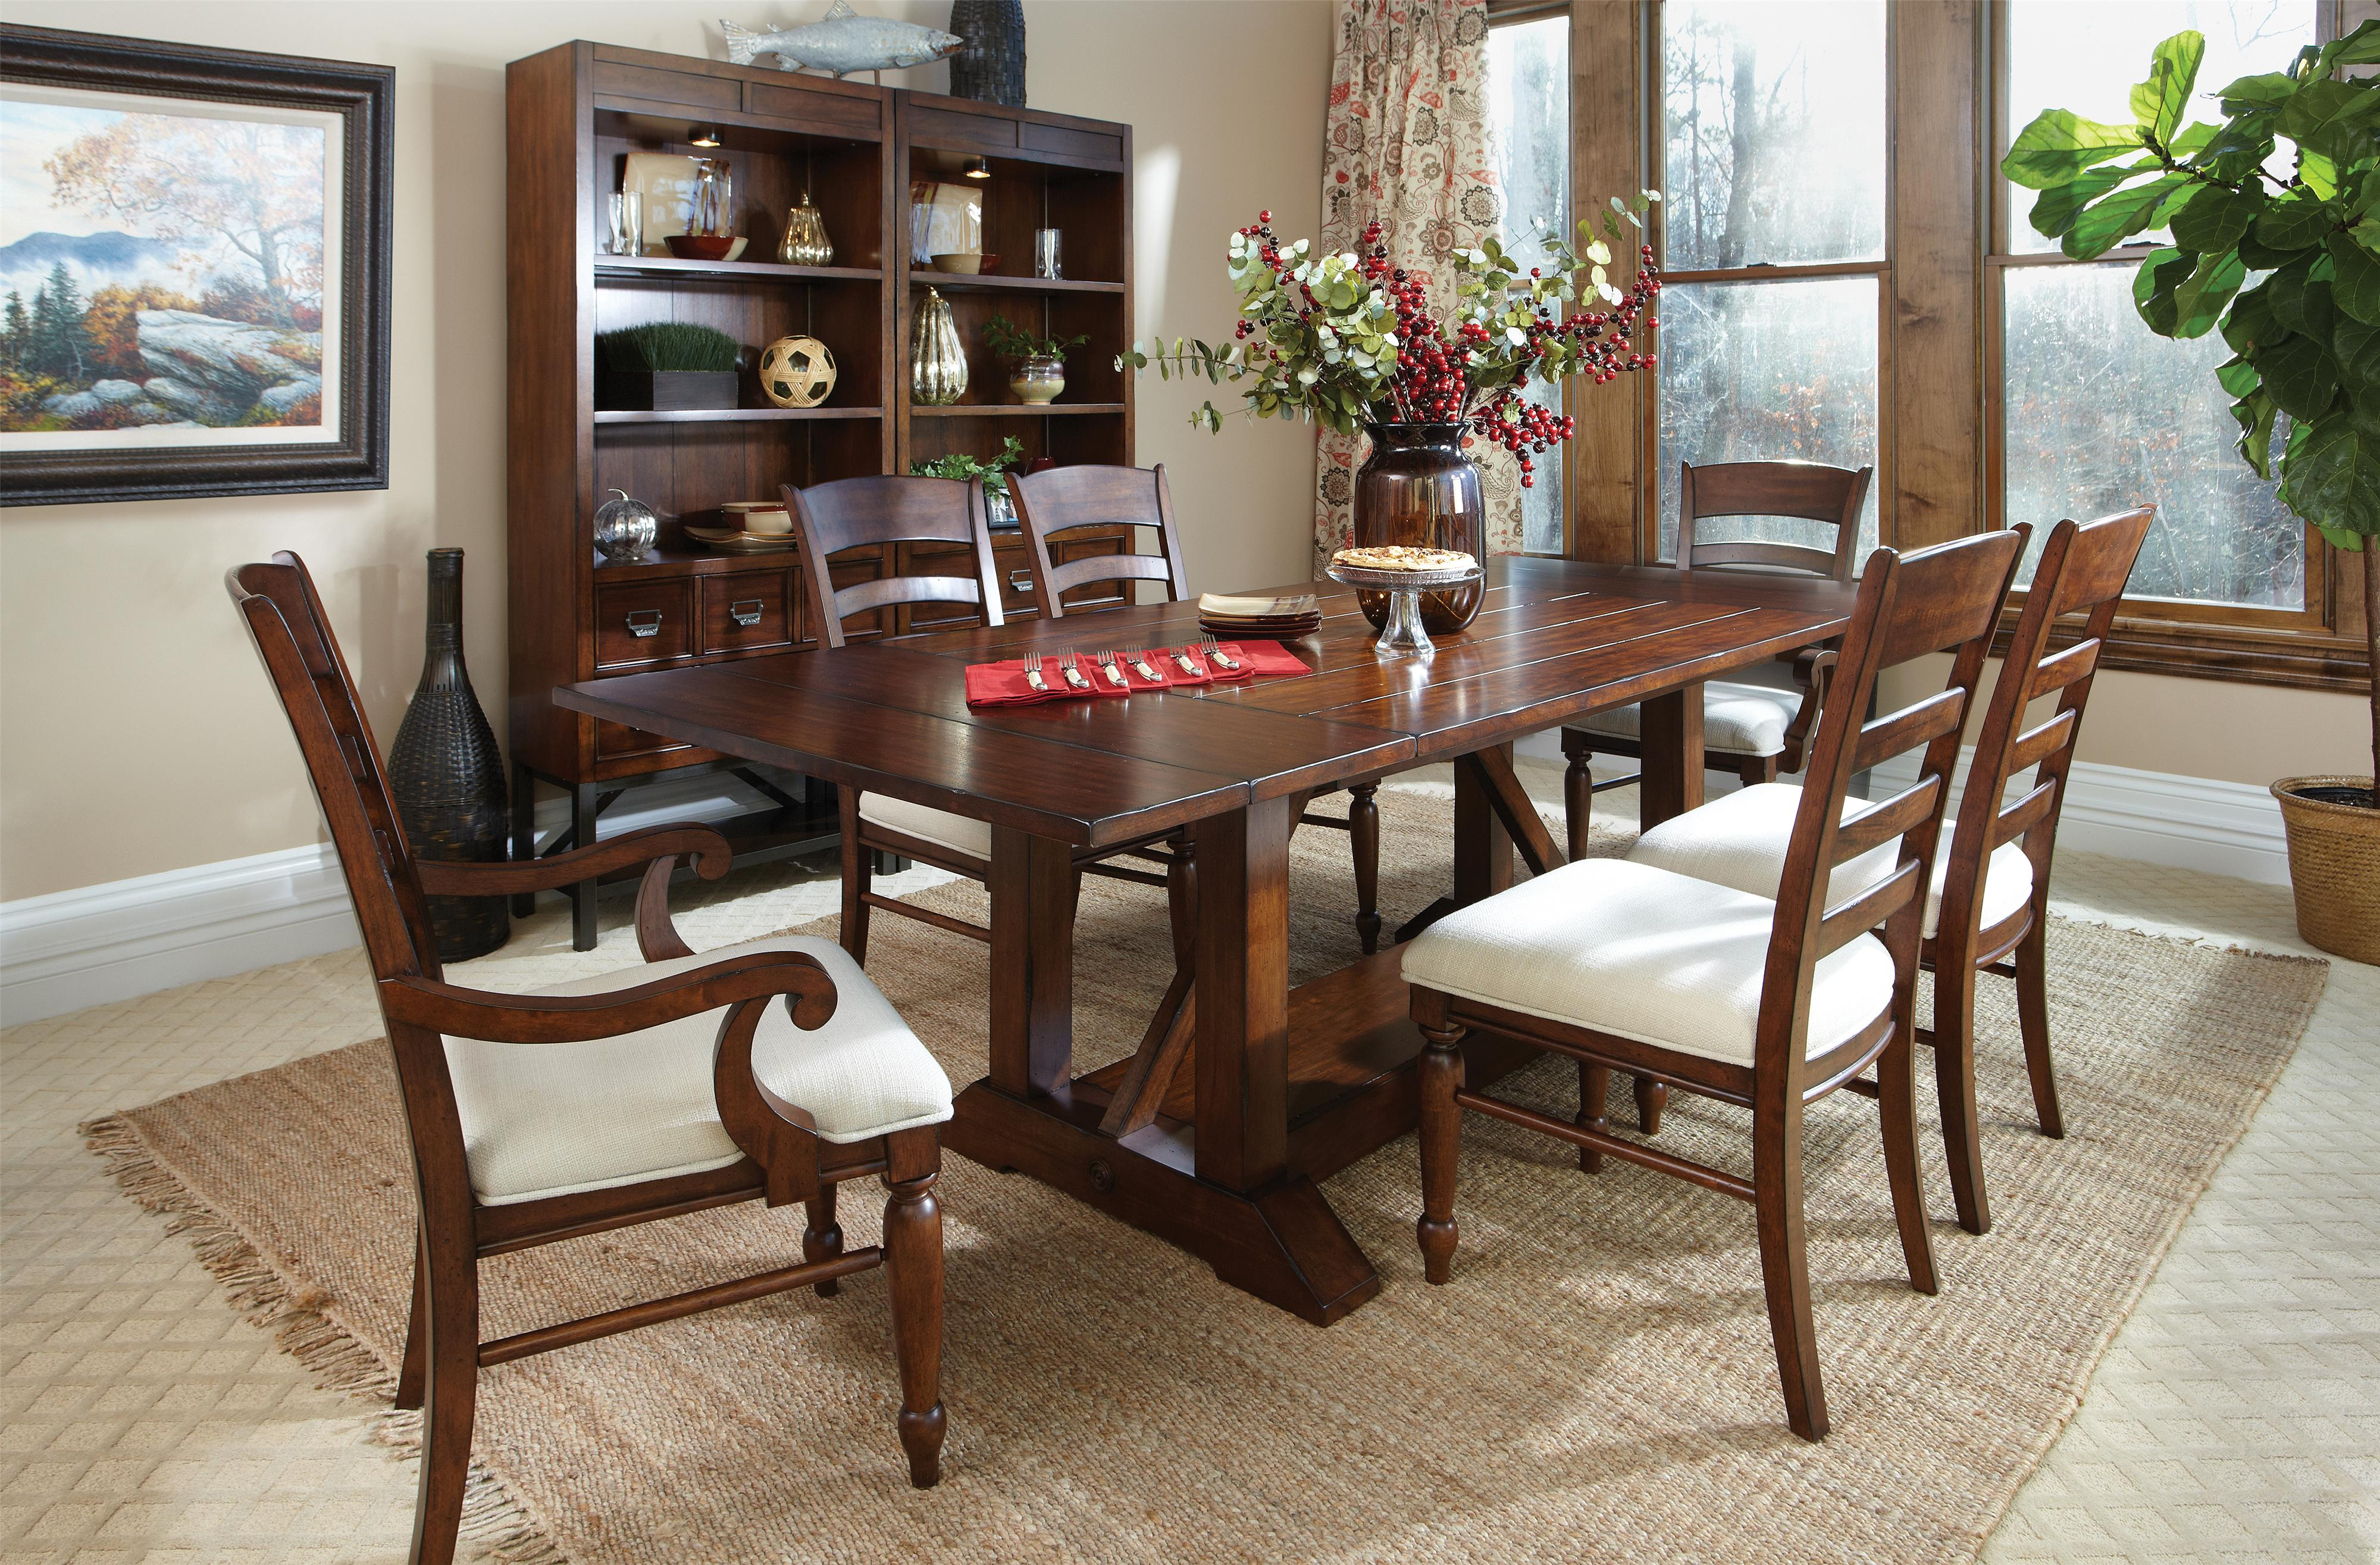 Easton collection blue ridge cherry ladder back arm chair for Dining room tables easton